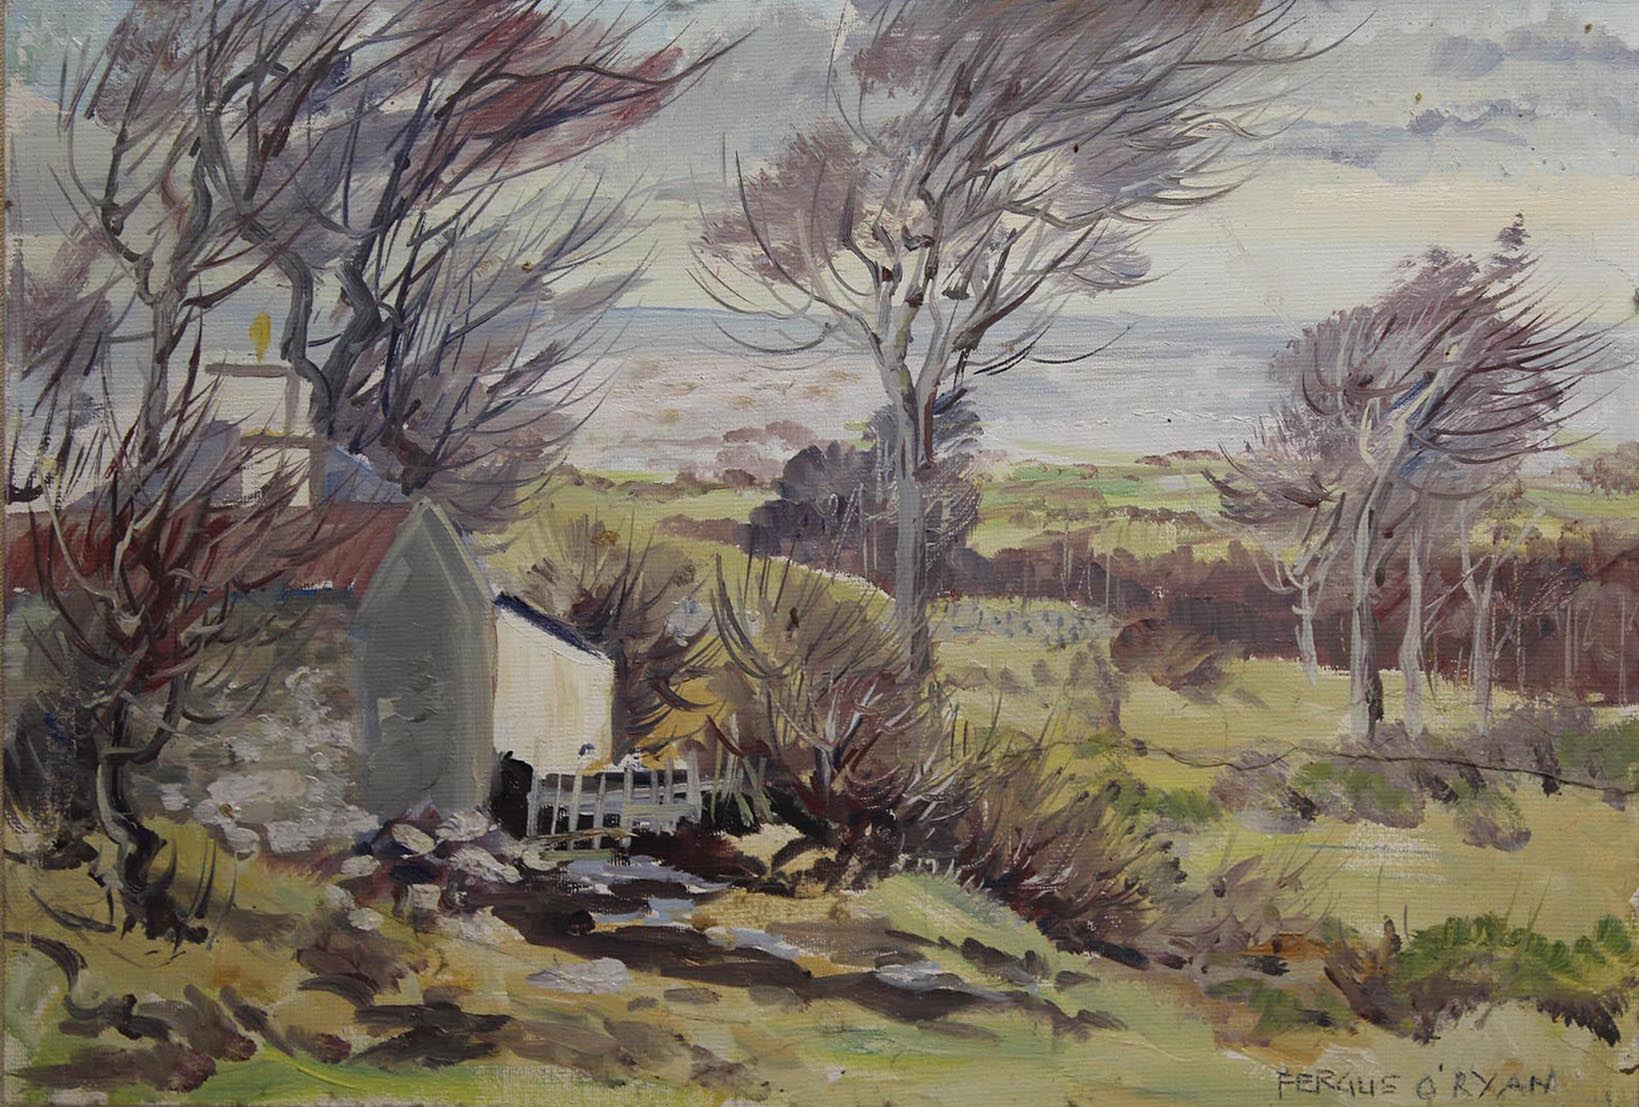 """Lot 49 - Fergus O'Ryan COUNTRY COTTAGE Oil on board, 10"""" x 14 1/2"""" (25.5 x 38.8 cm), signed"""